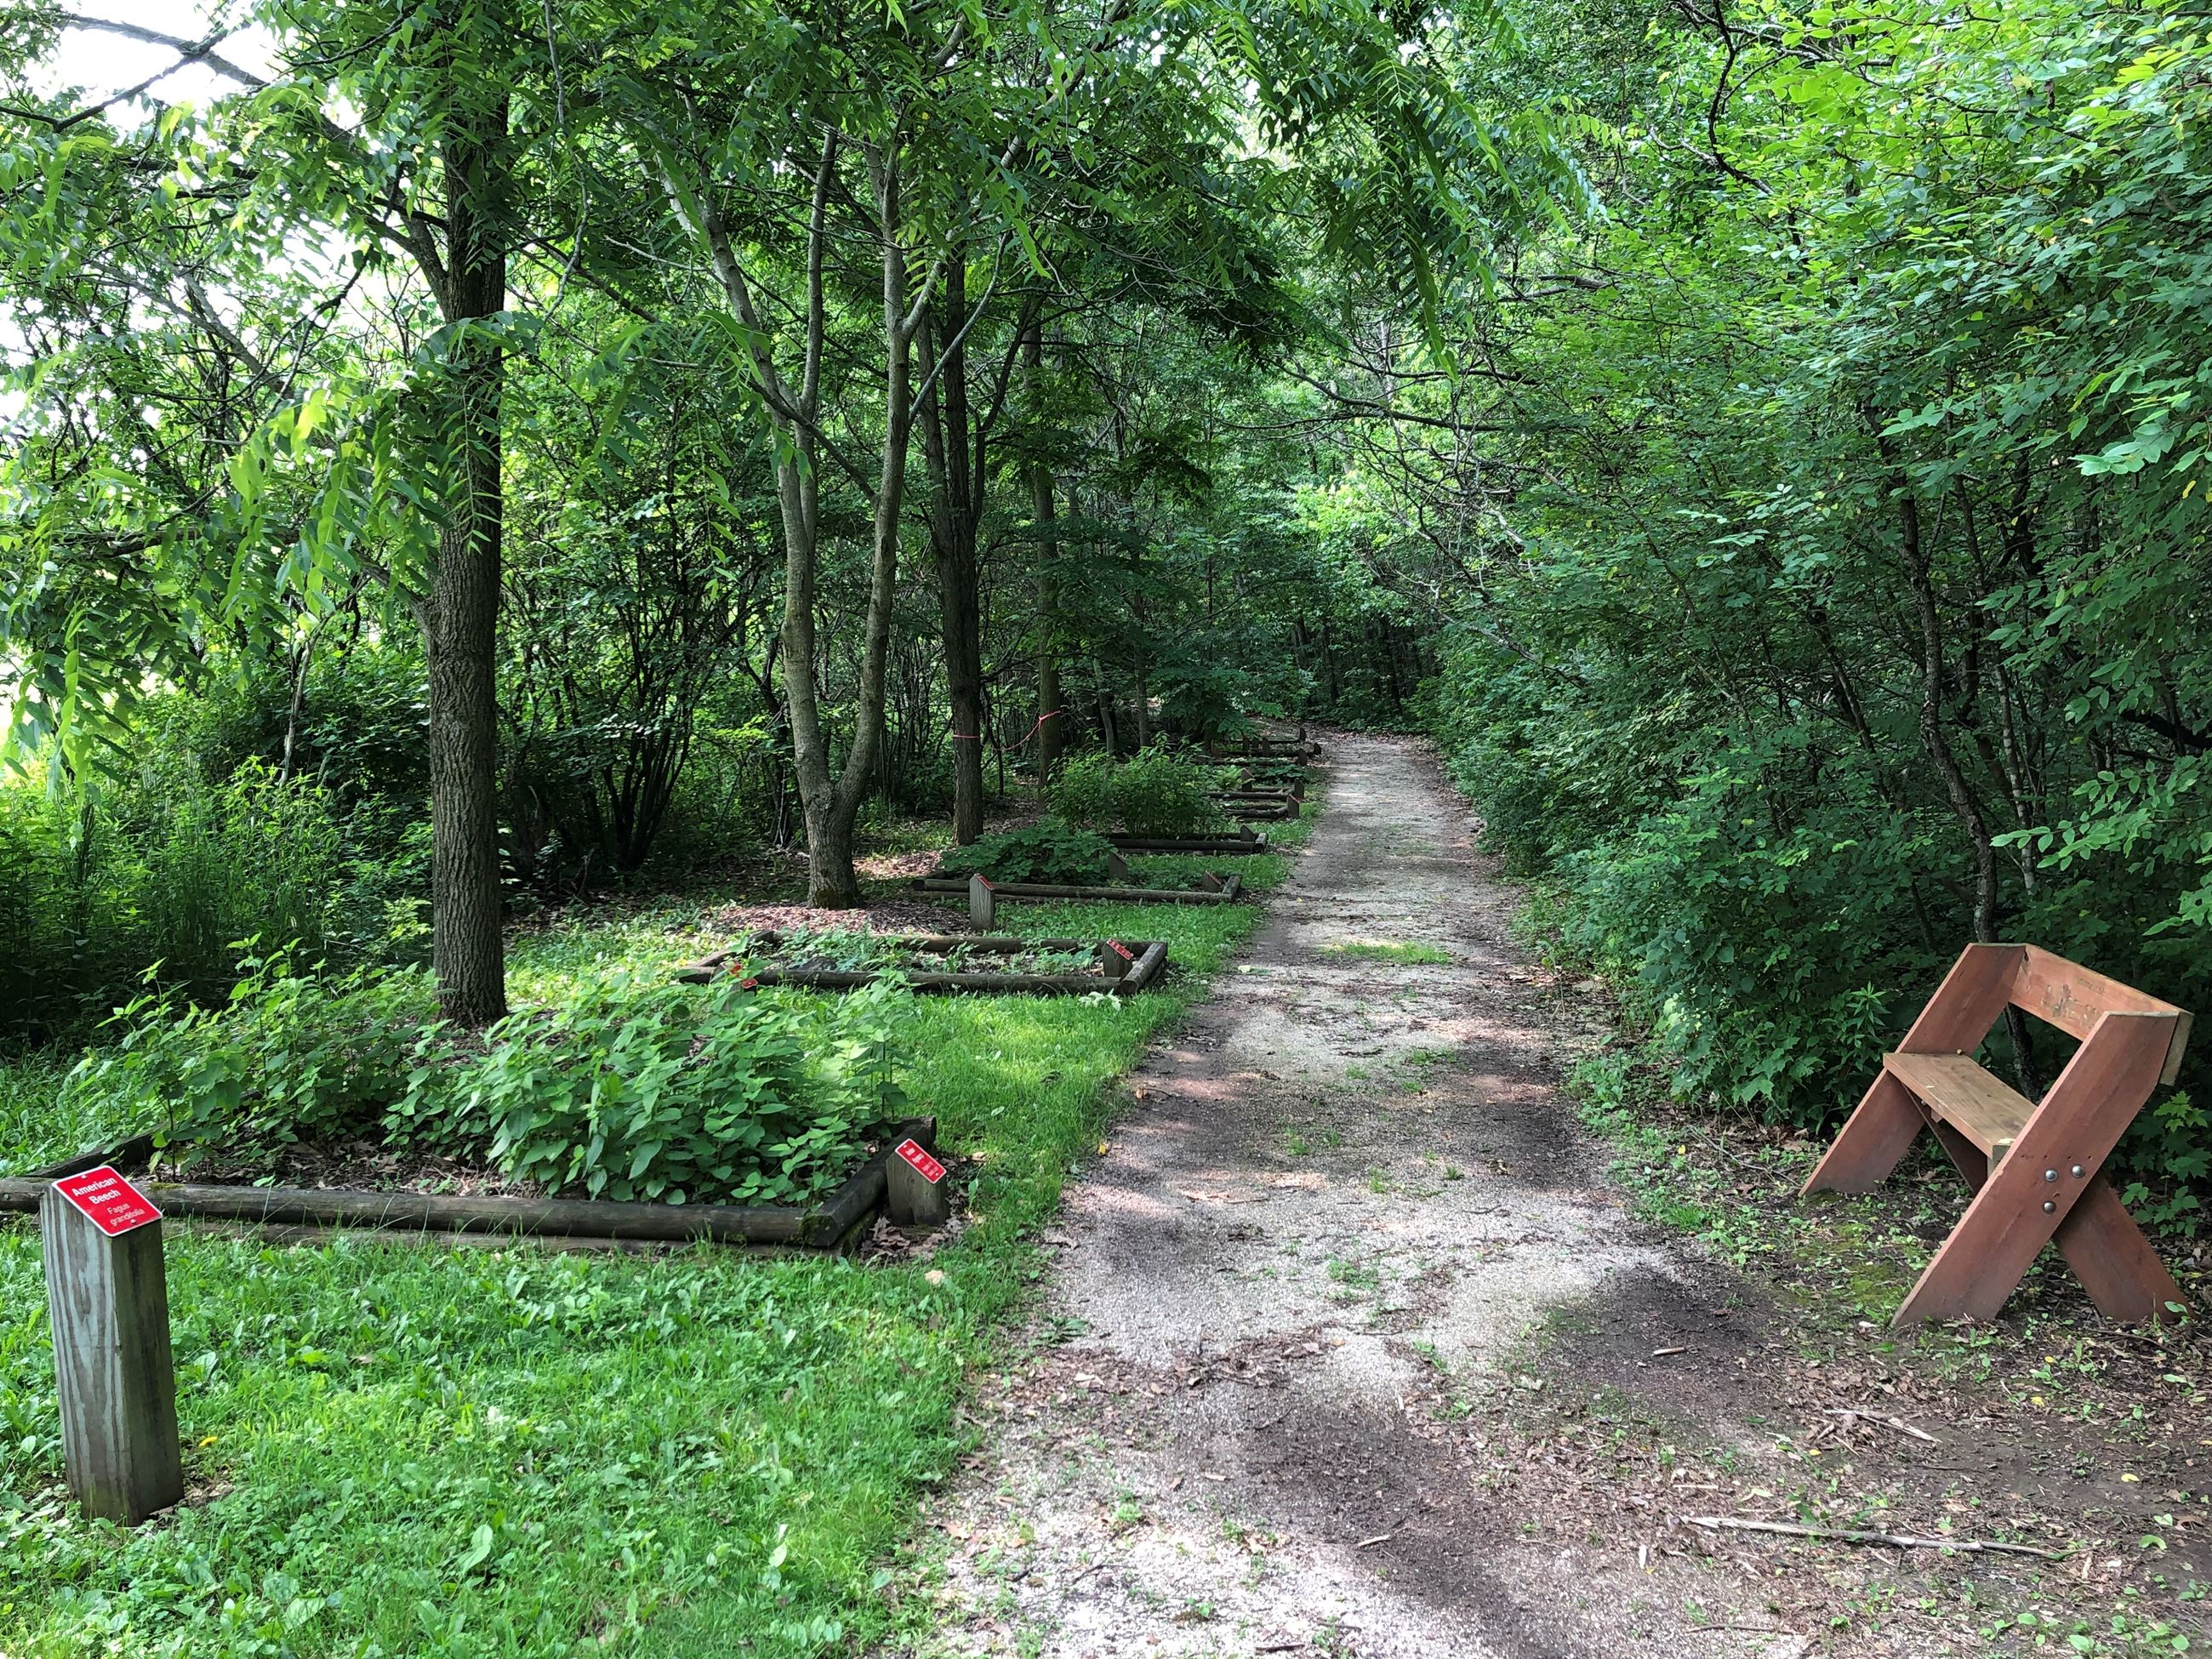 A trail through an arboretum. There are wooden edged garden beds, trees and a wooden bench